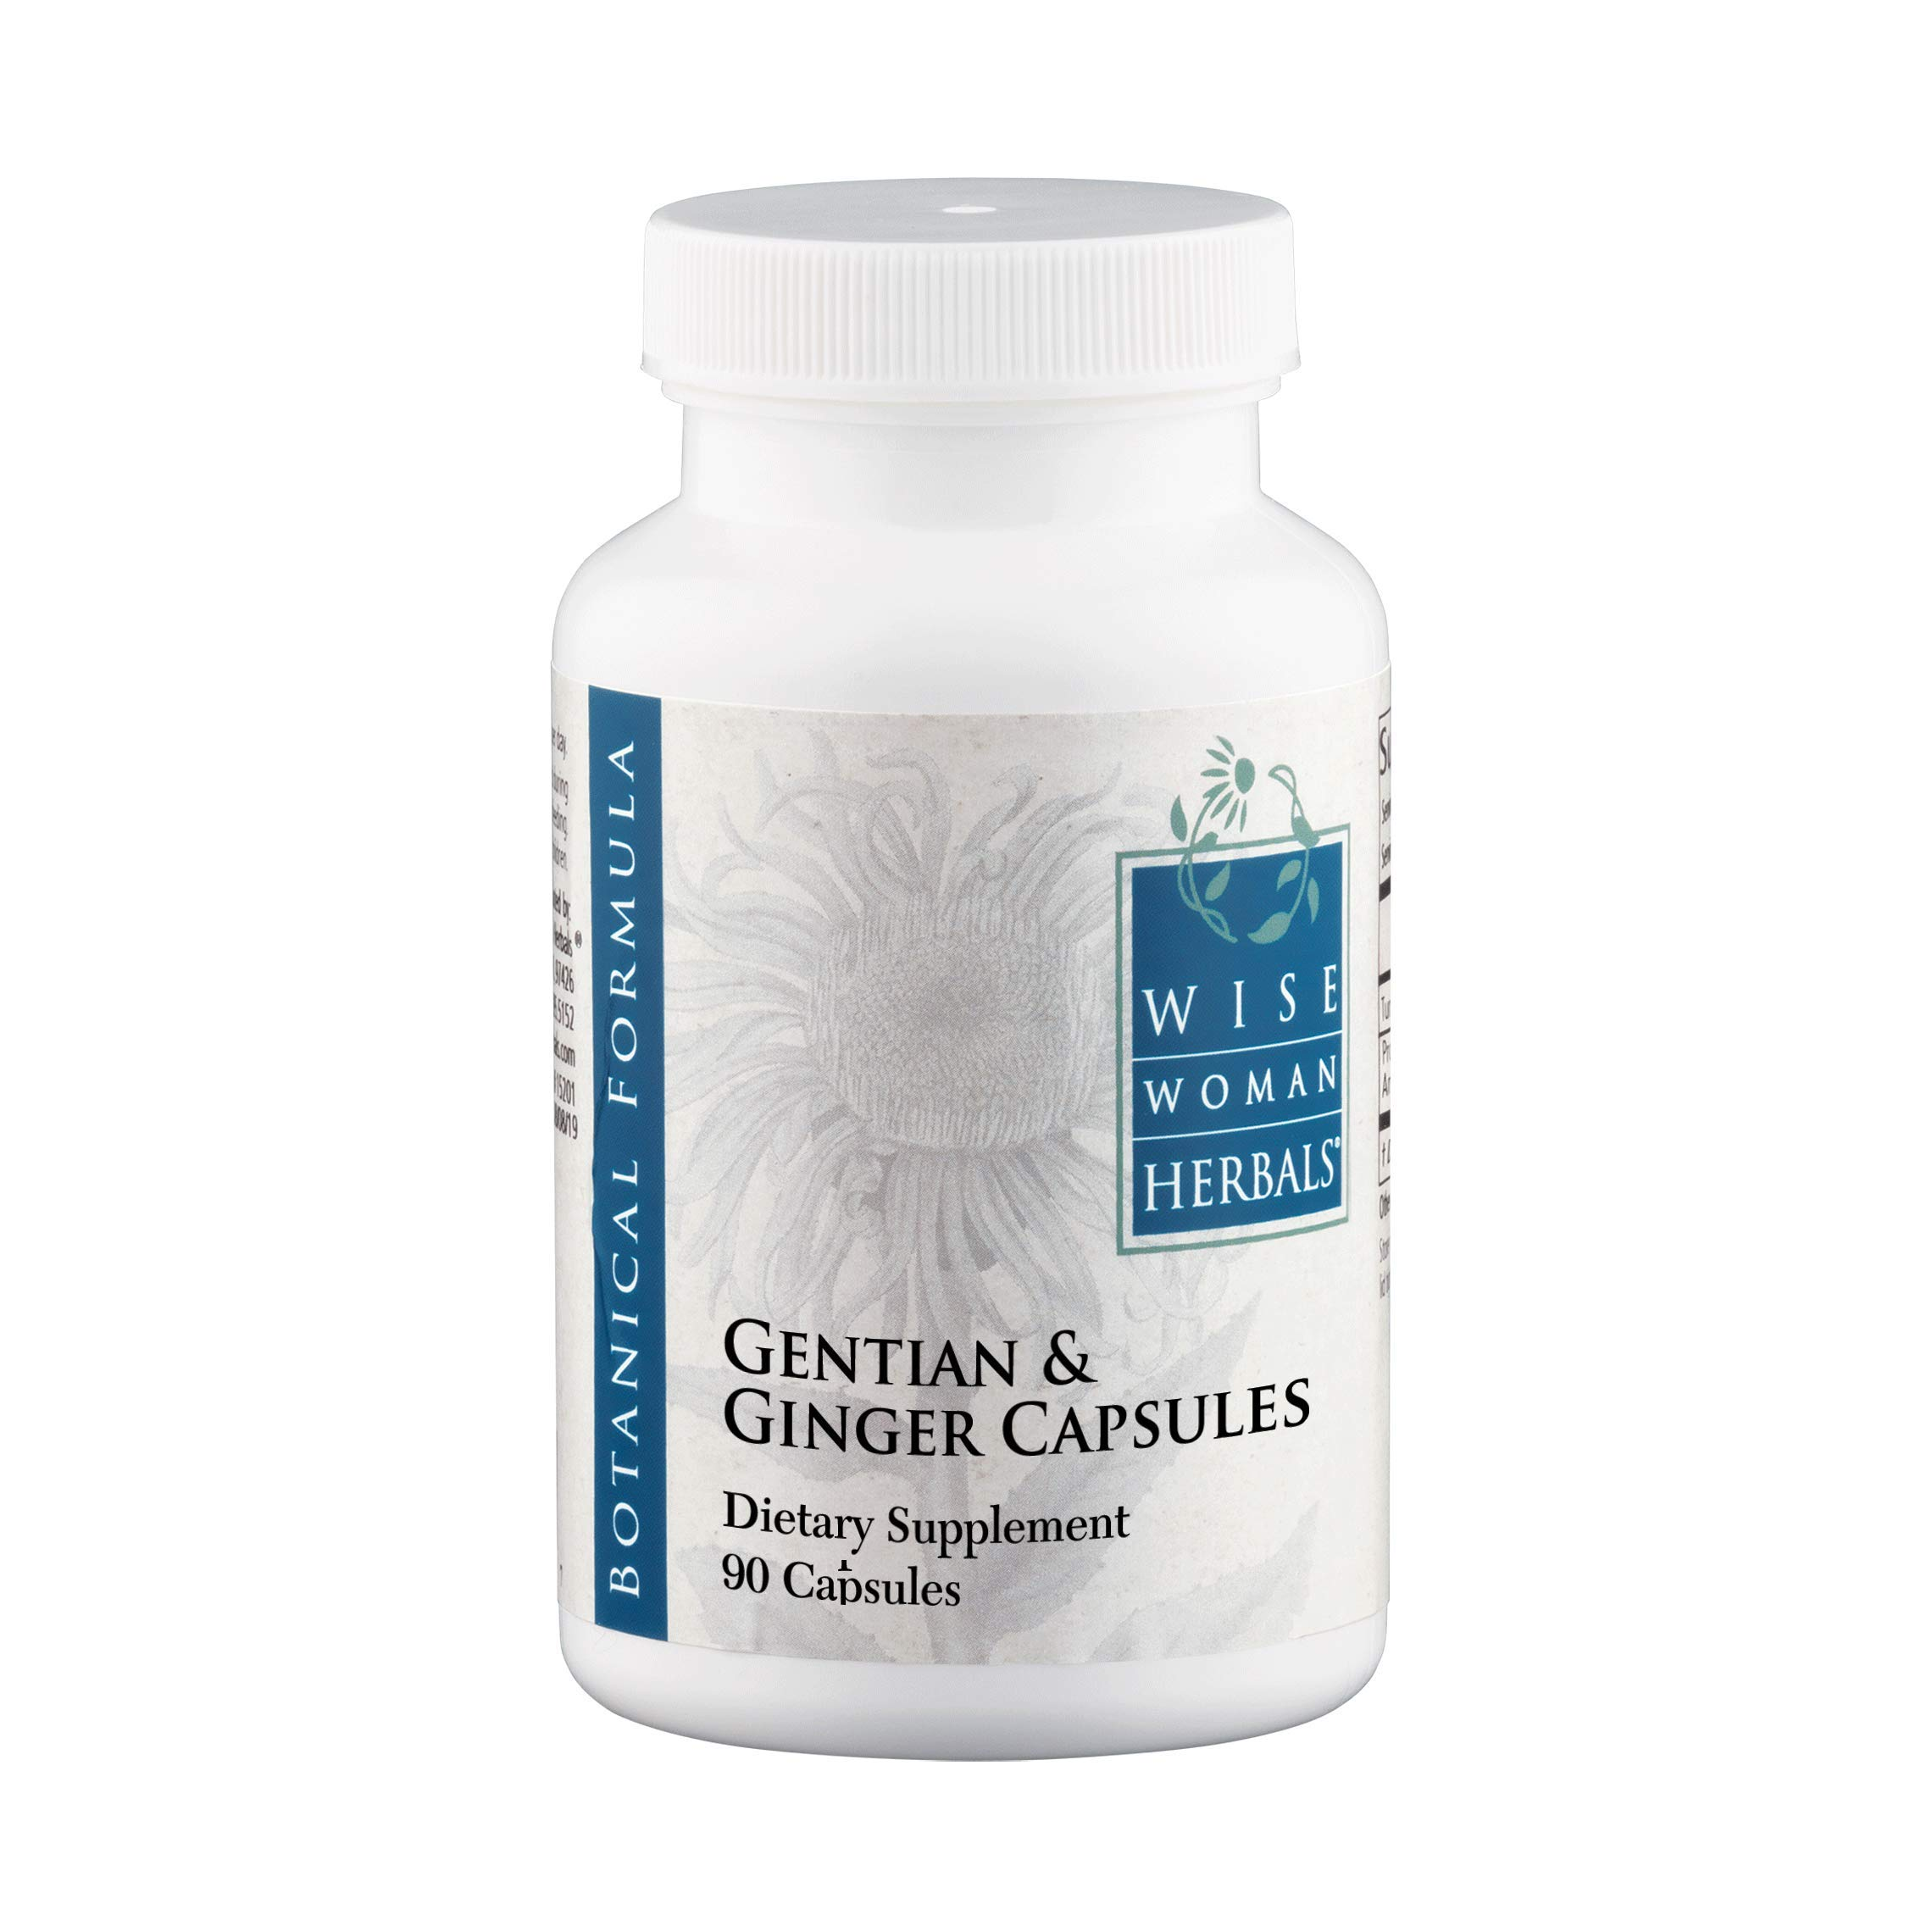 Wise Woman Herbals - Gentian & Ginger Capsules - All-Natural Digestive Function Support Supplement for Normal Healthy Digestion, Natural Aid for Occasional Upset Stomach, Acid Indigestion and Gas